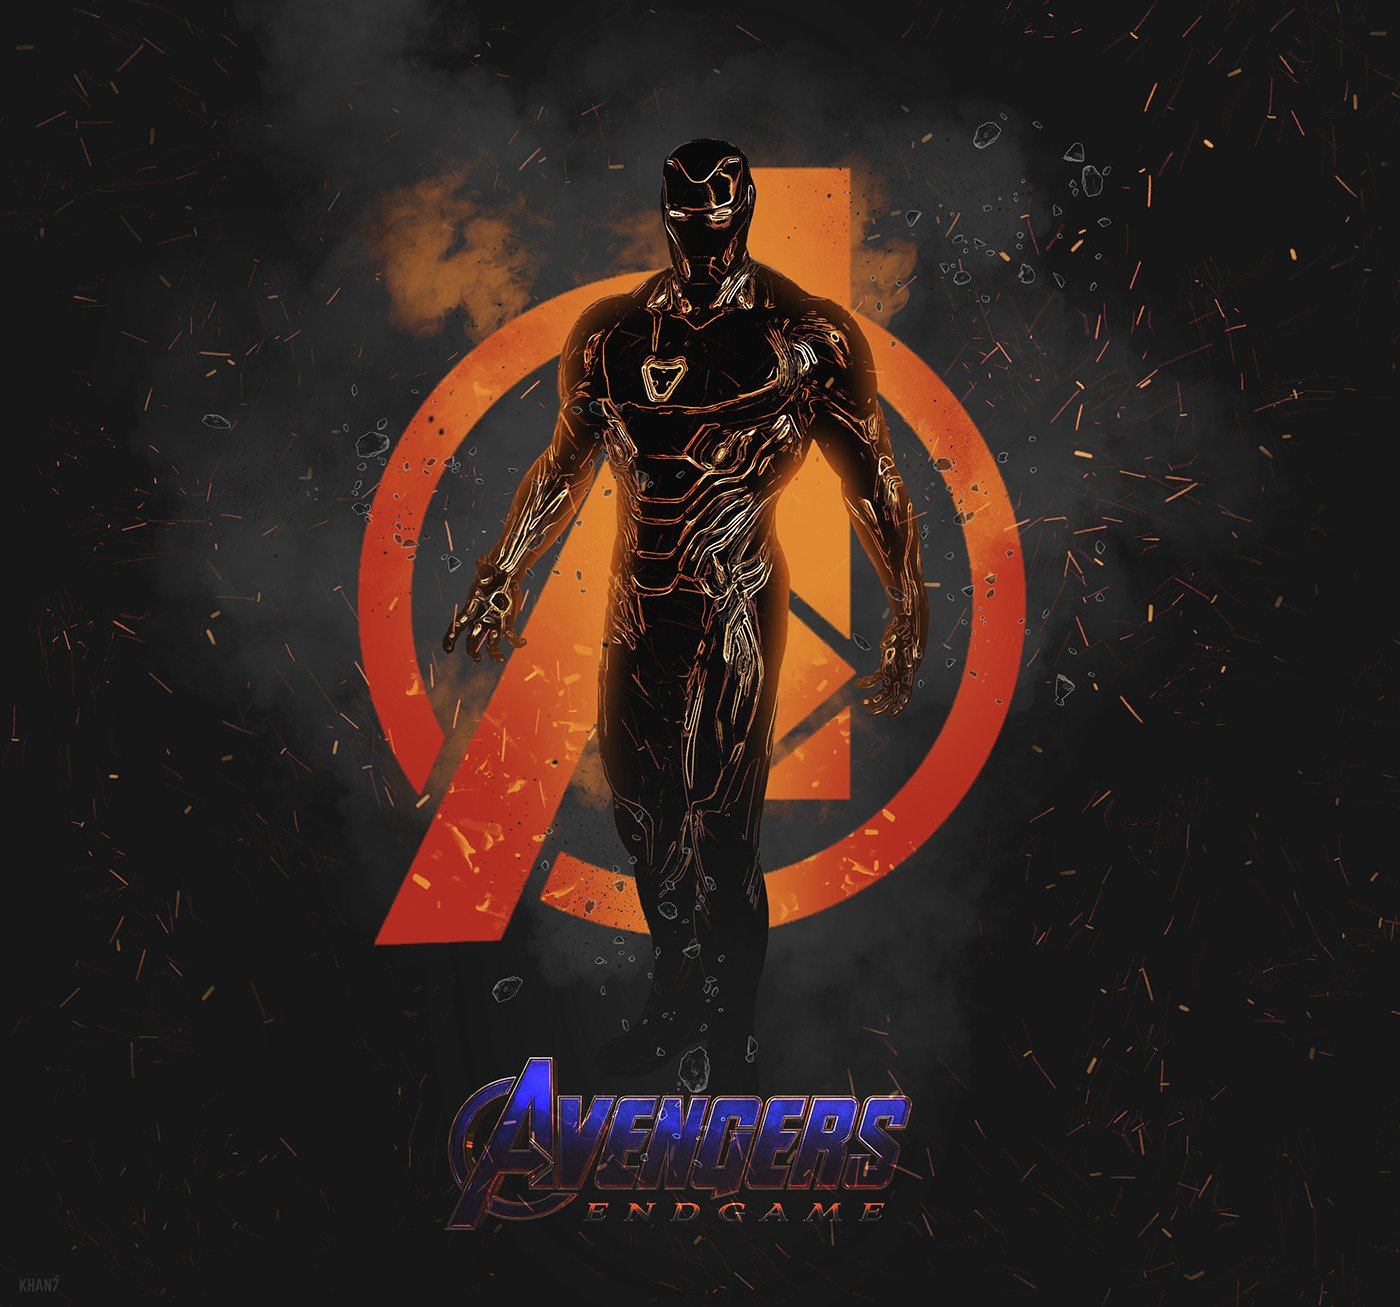 Free Download Iron Man Dope Wallpaper Avengers Endgame Art By